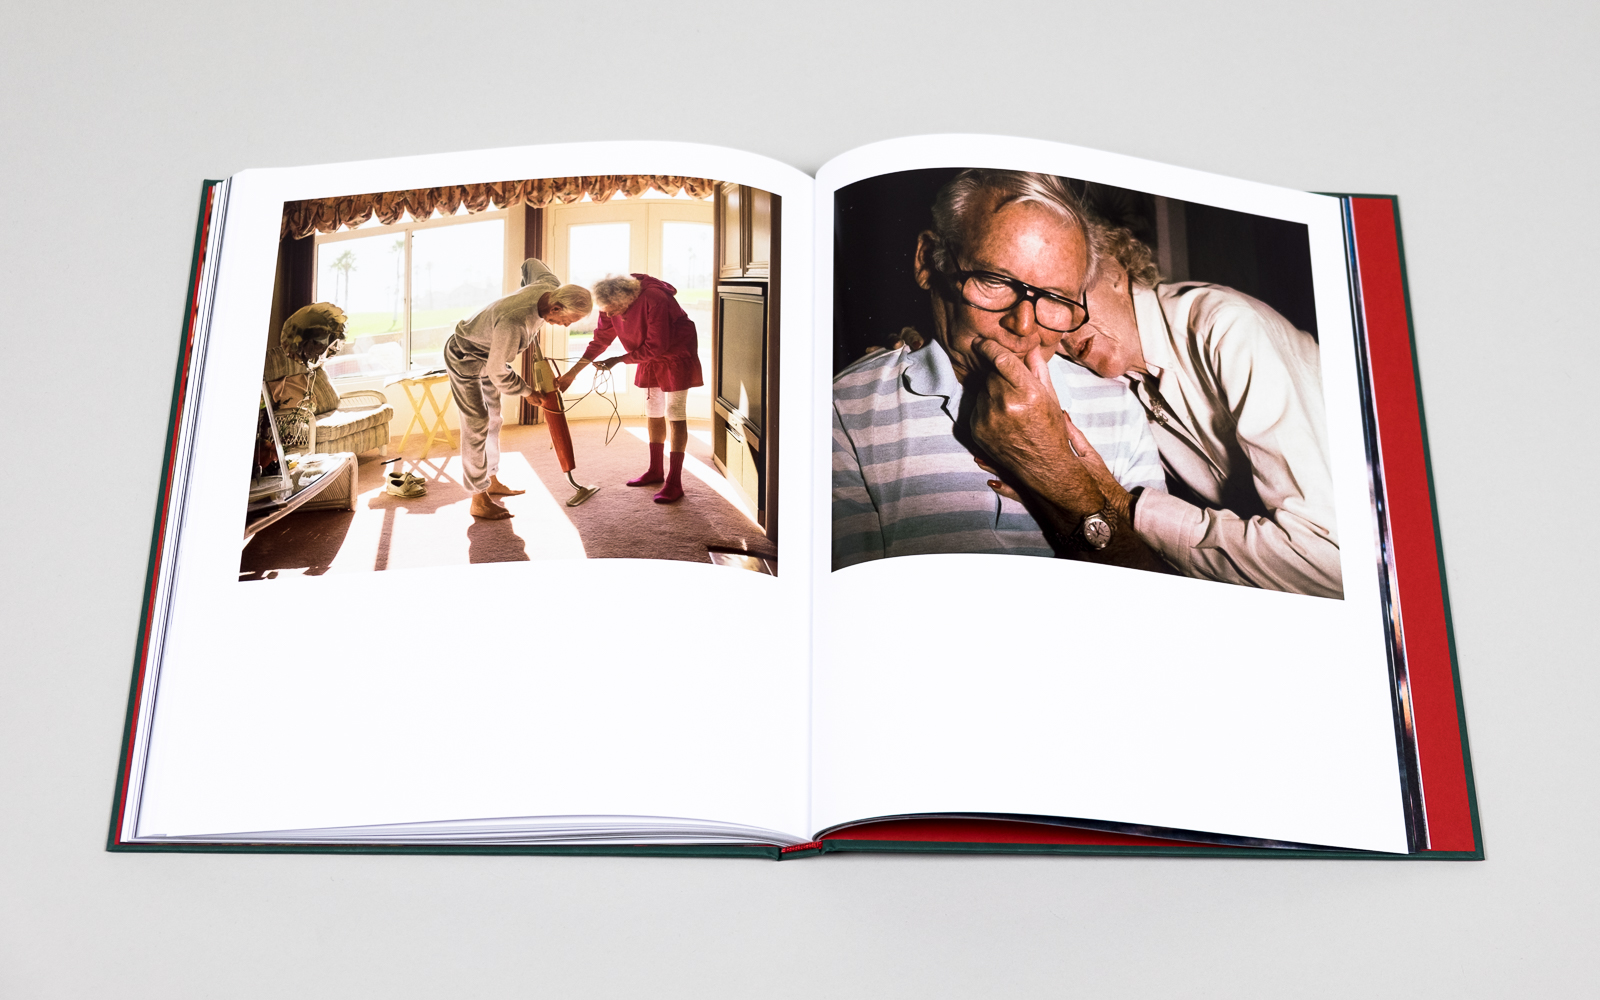 Schlafzimmer Komplett Classic Larry Sultan Pictures From Home Artbooks